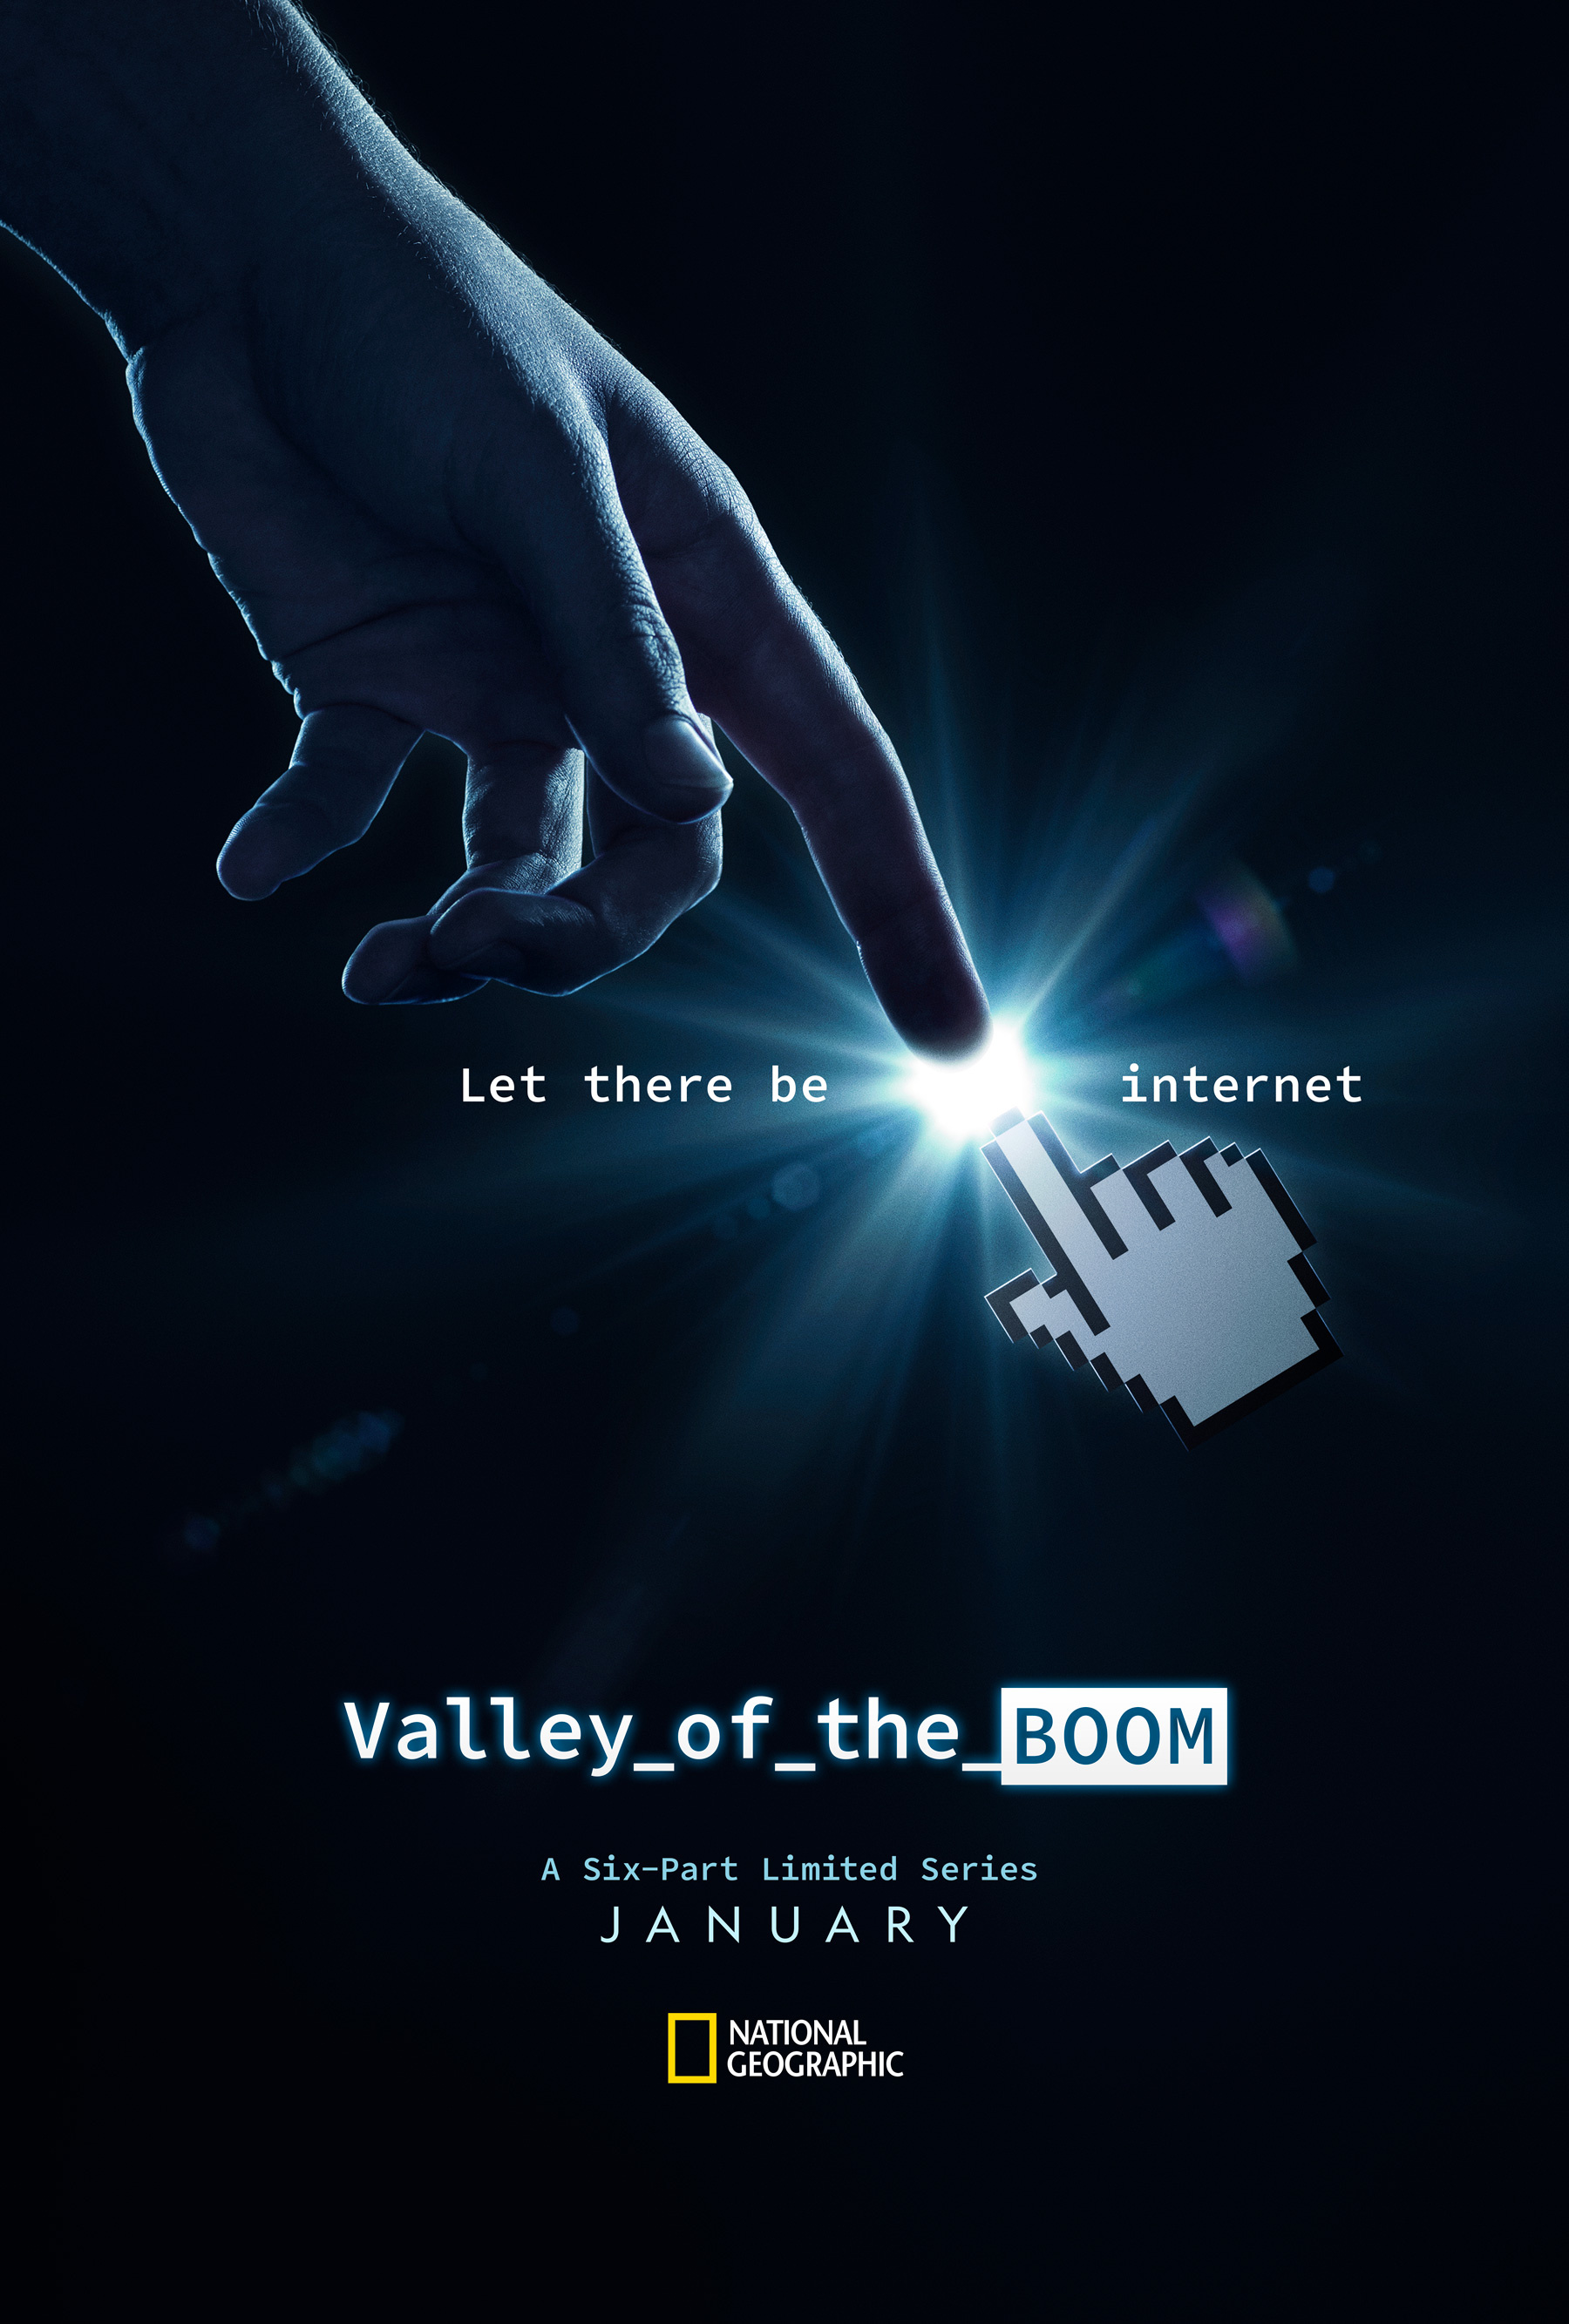 Thumbnail for  Valley of the Boom: Let There Be Internet